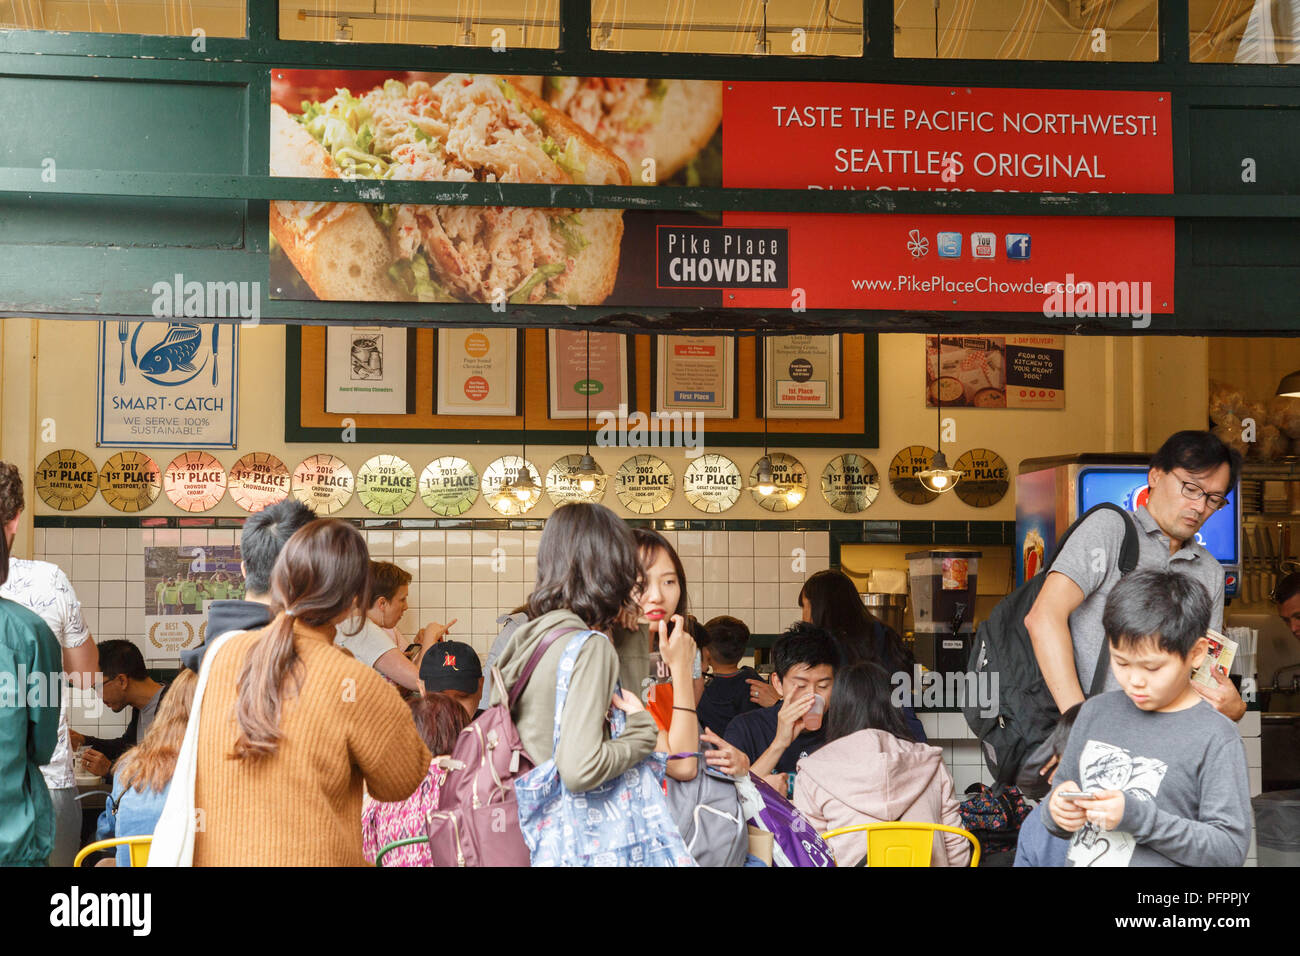 people wait in a long line to taste at the restaurant Pike Place Chowder which is very well known for their New England Clam Chowder in Seattle, USA. - Stock Image